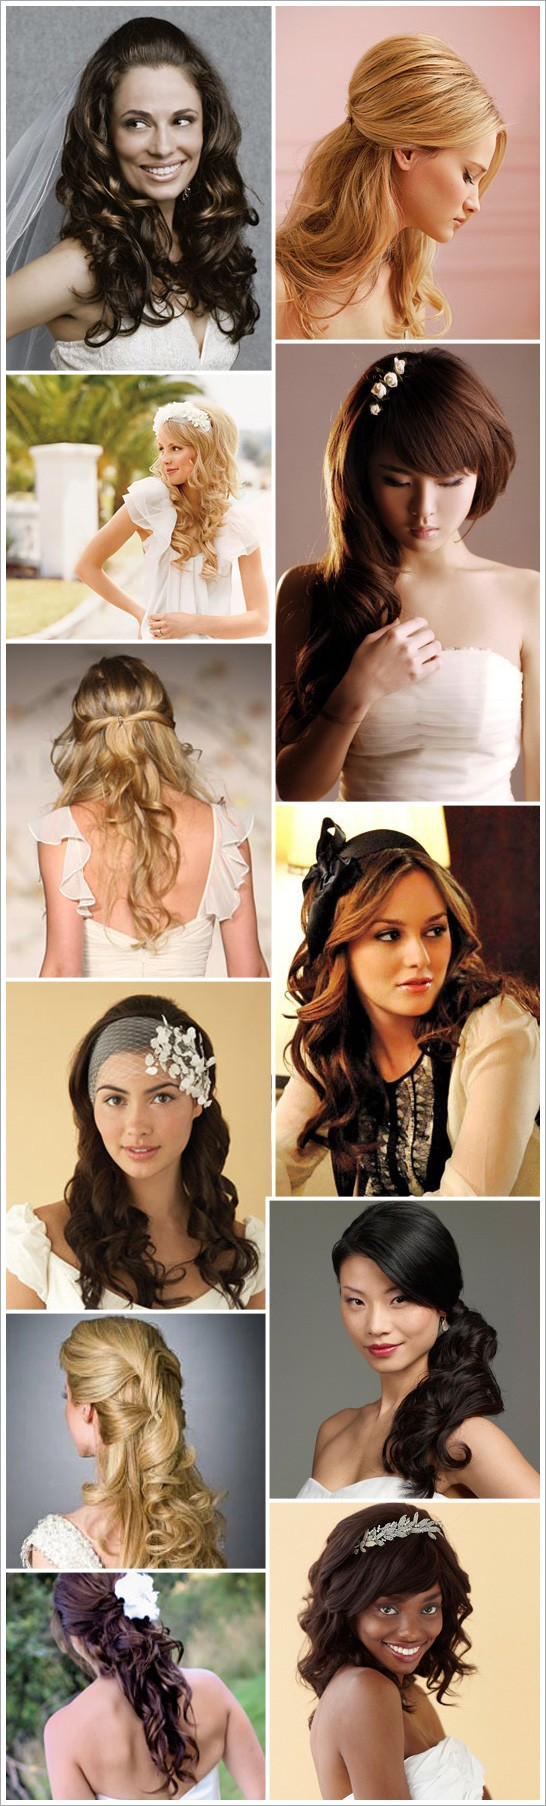 Love these hair do's for a wedding!